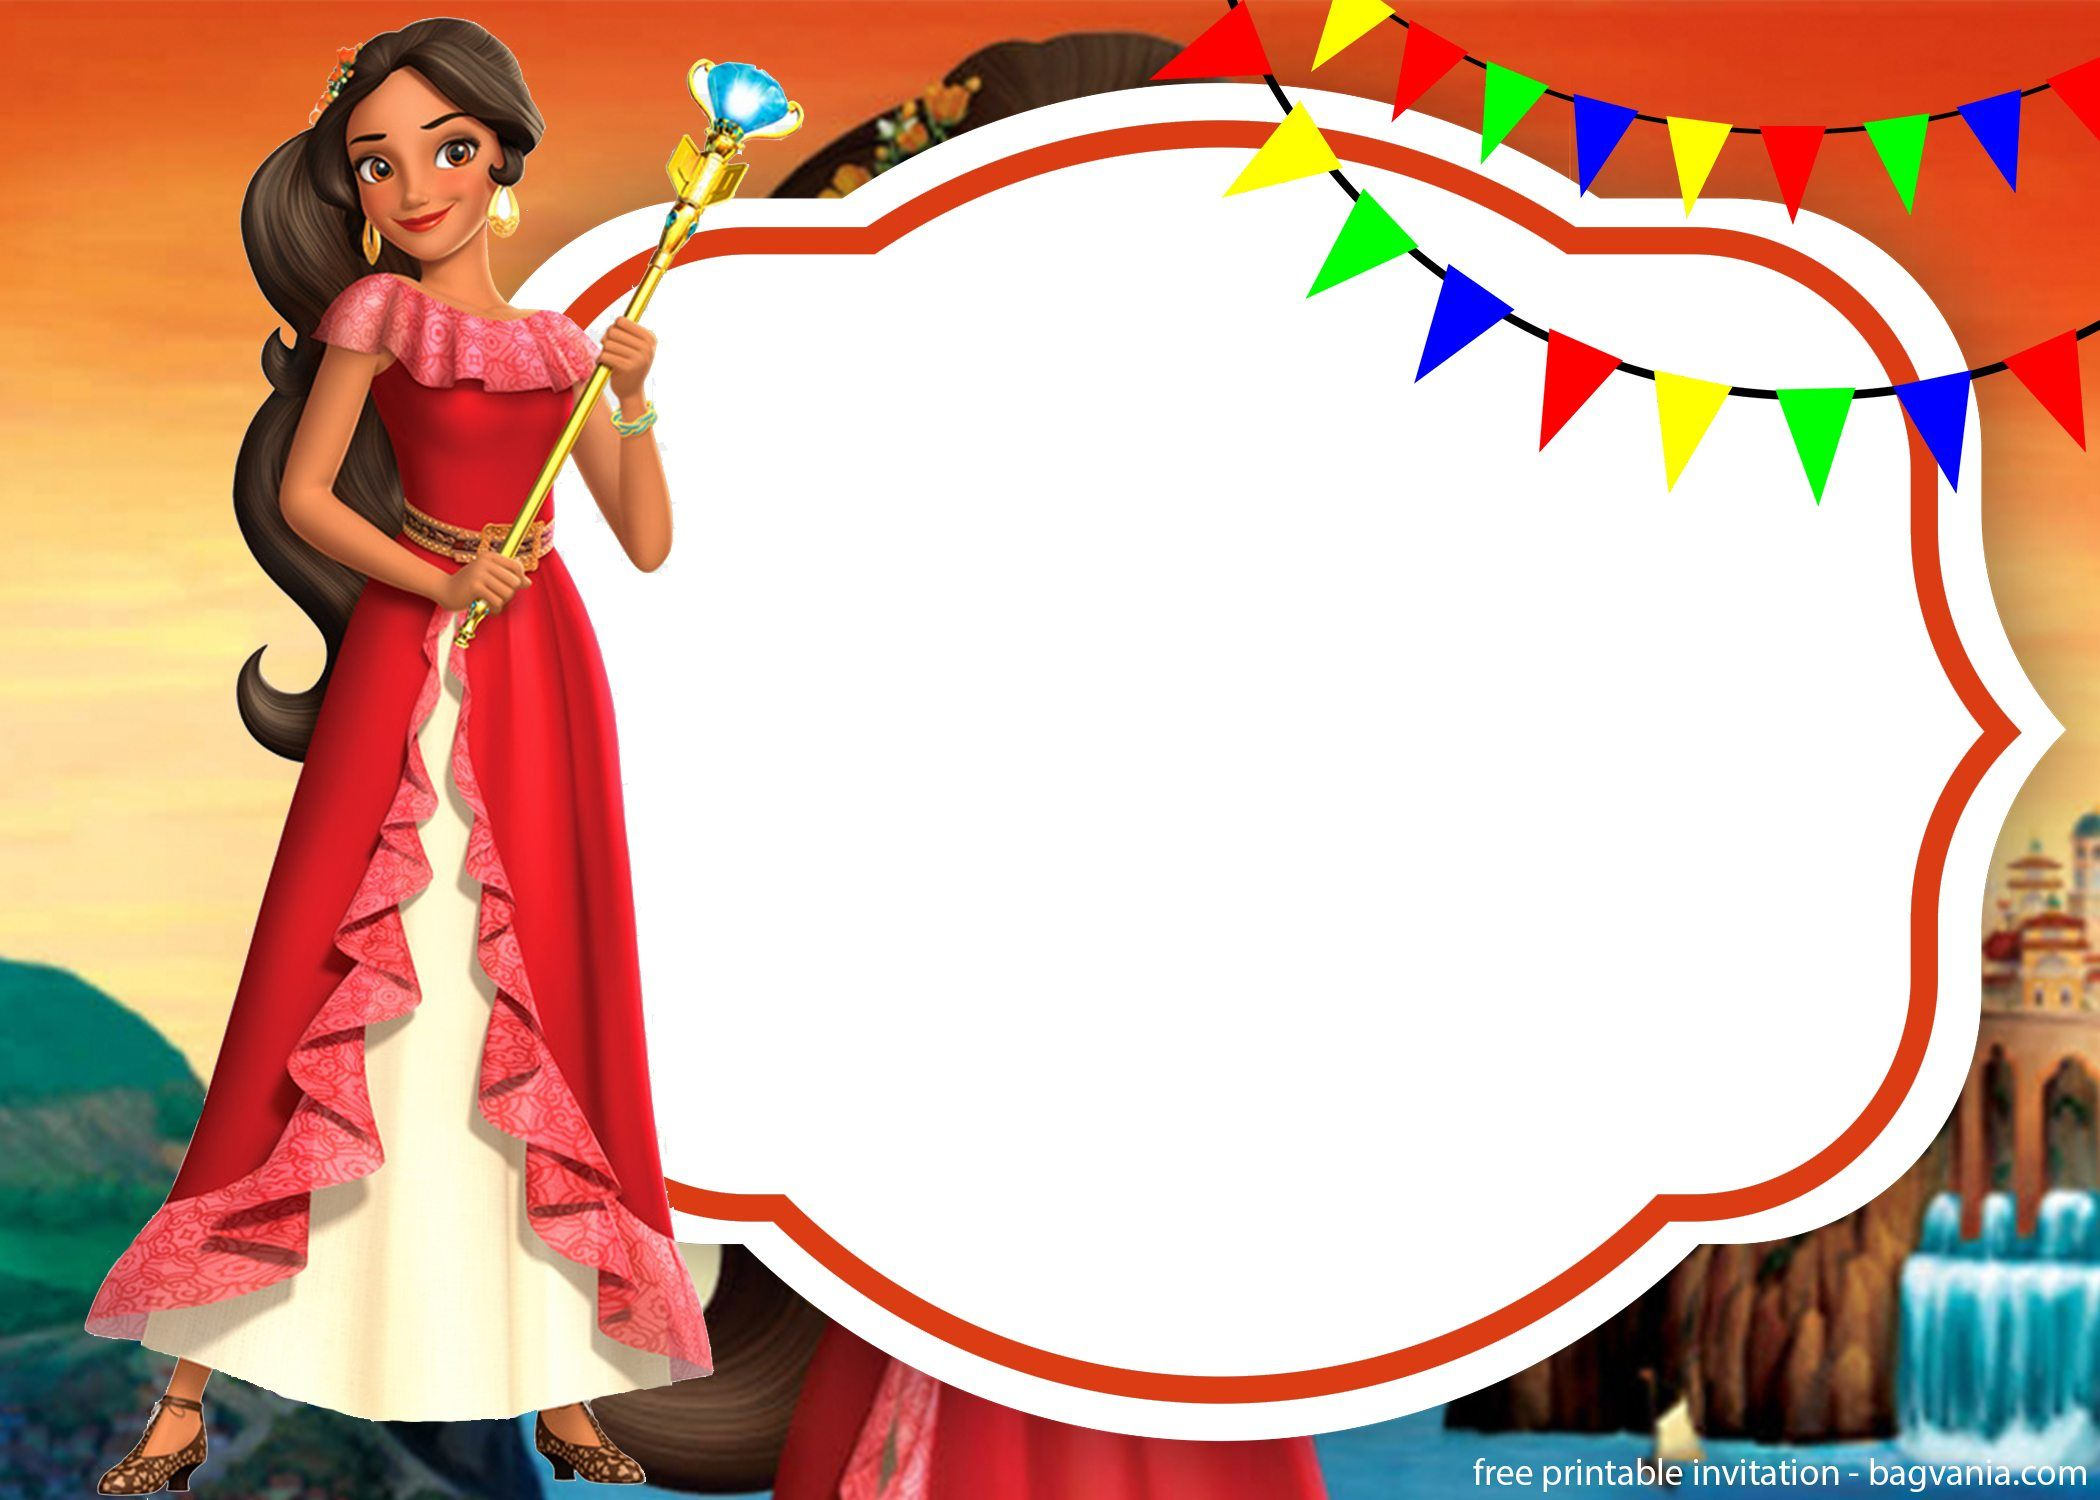 Free Elena Of Avalor Invitations For Your Lovely Princess